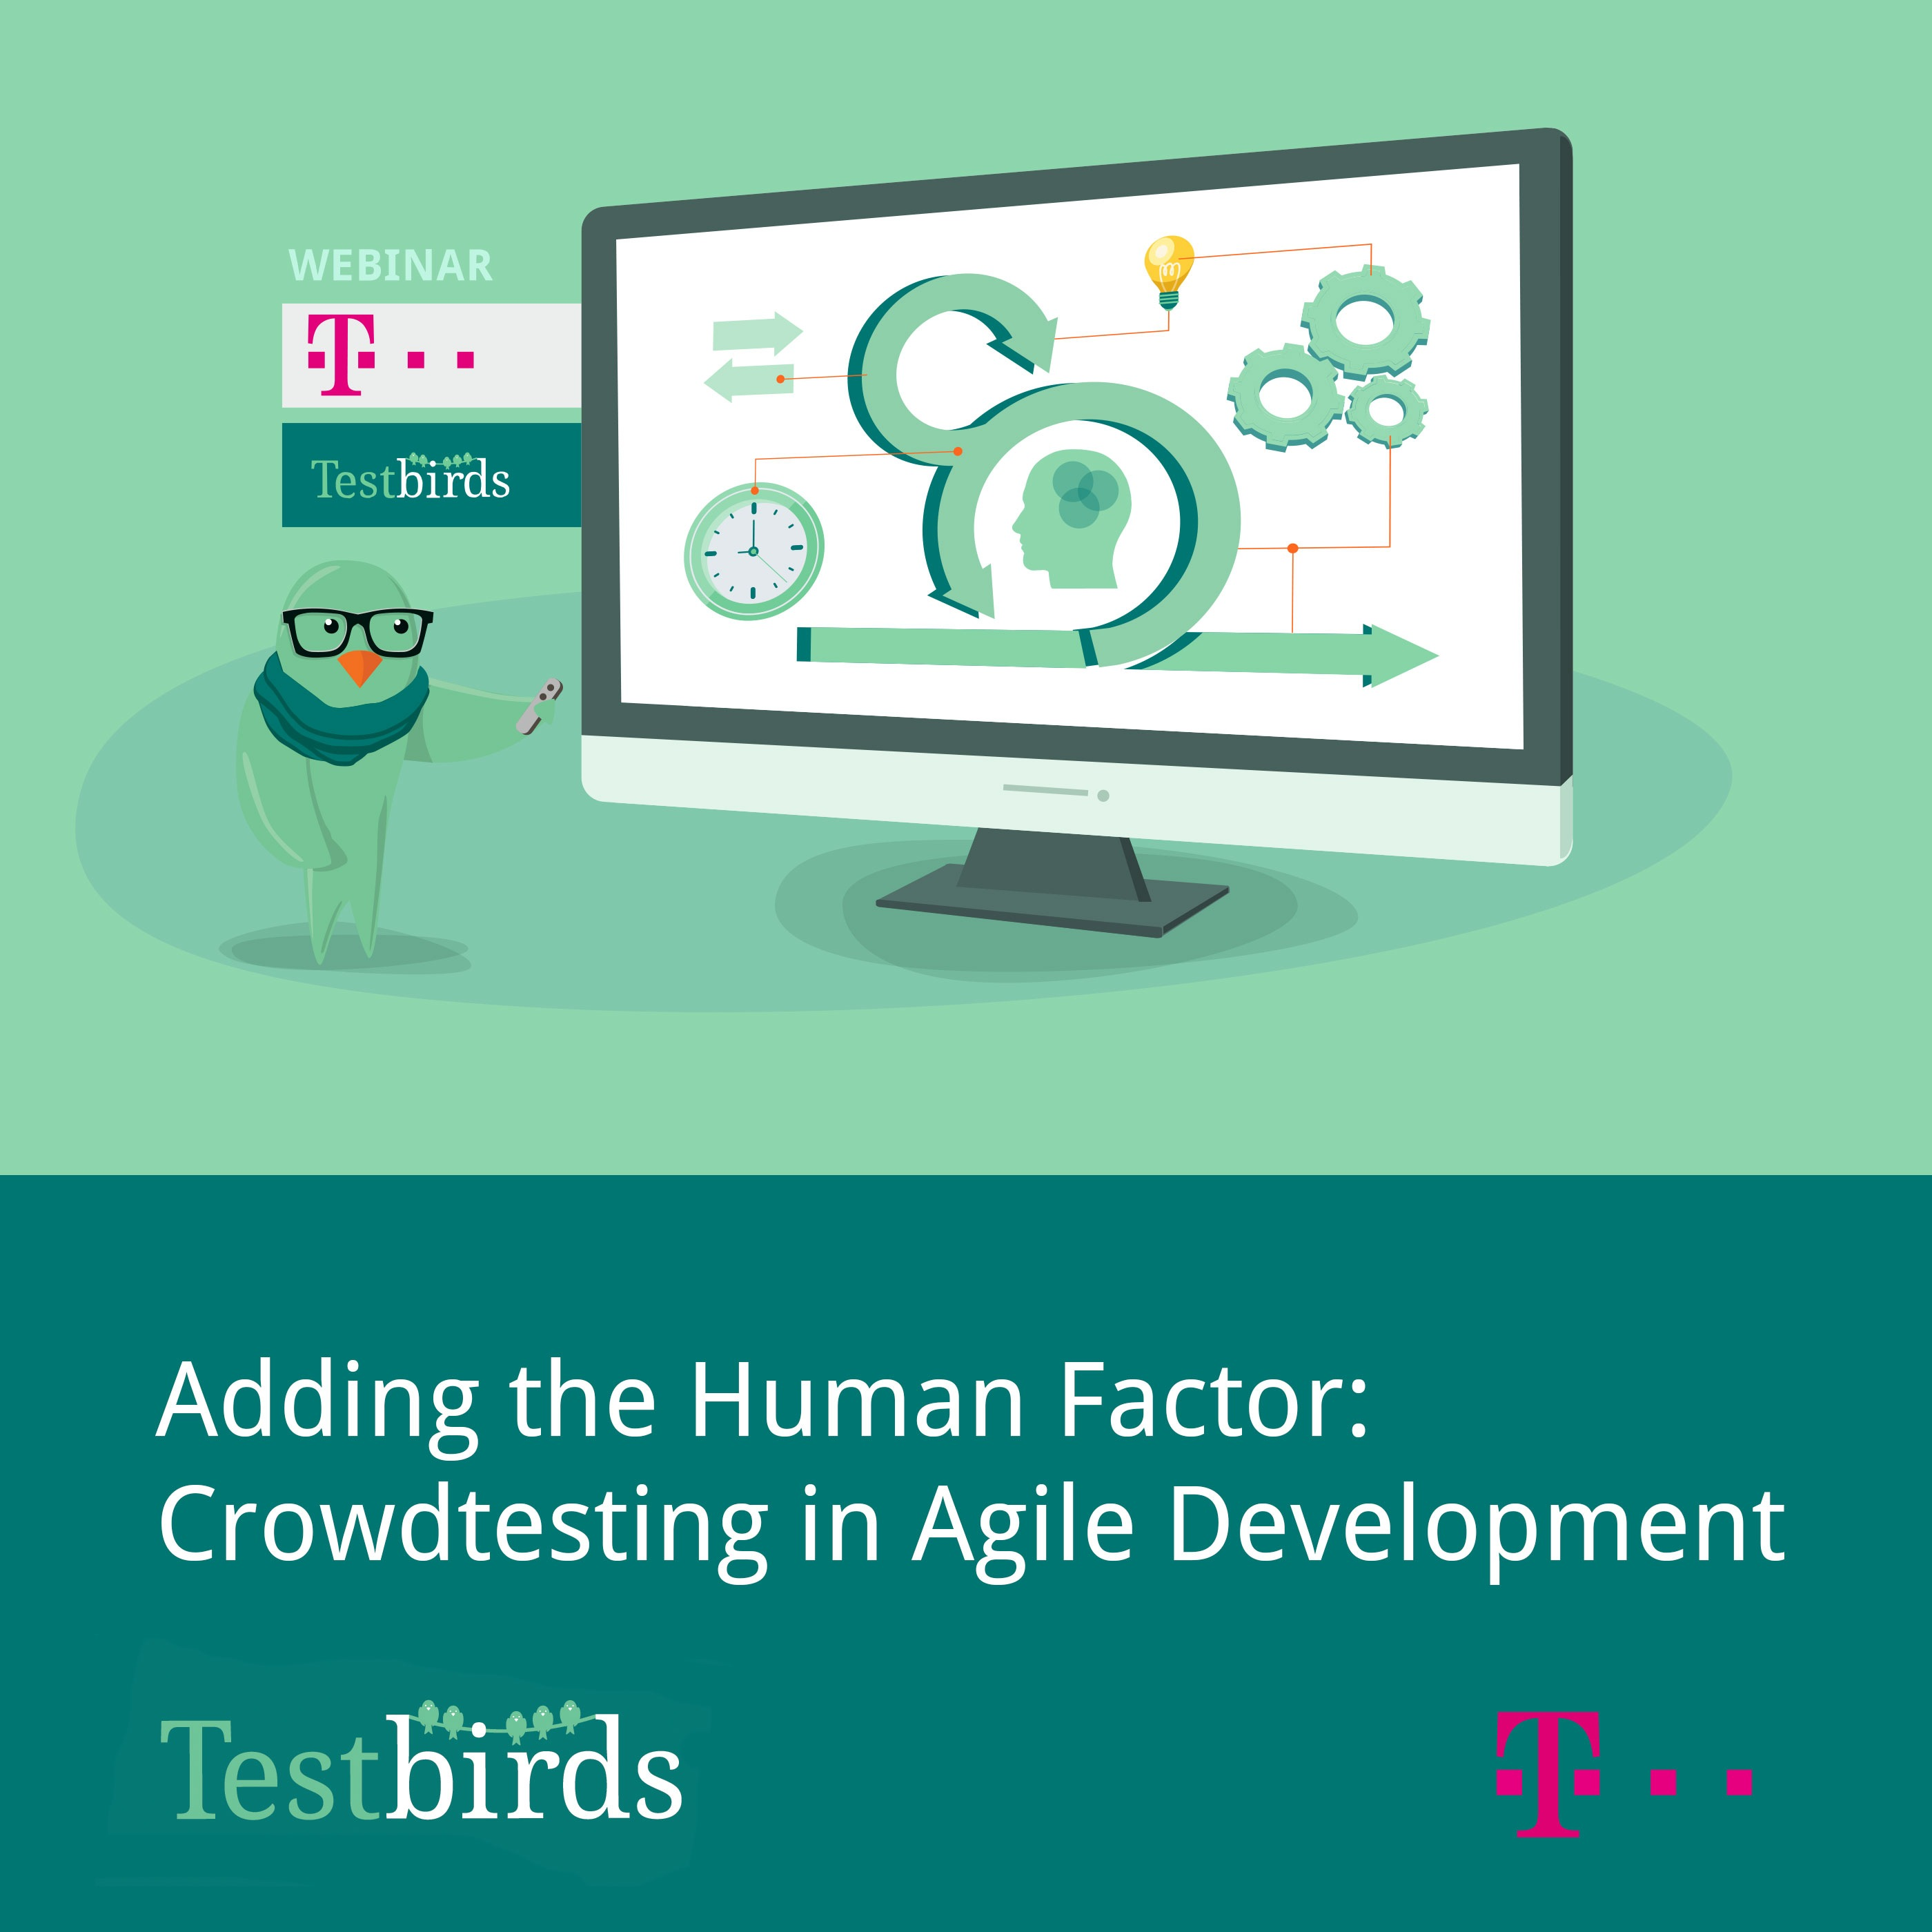 Adding the Human Factor: Crowdtesting in Agile Development